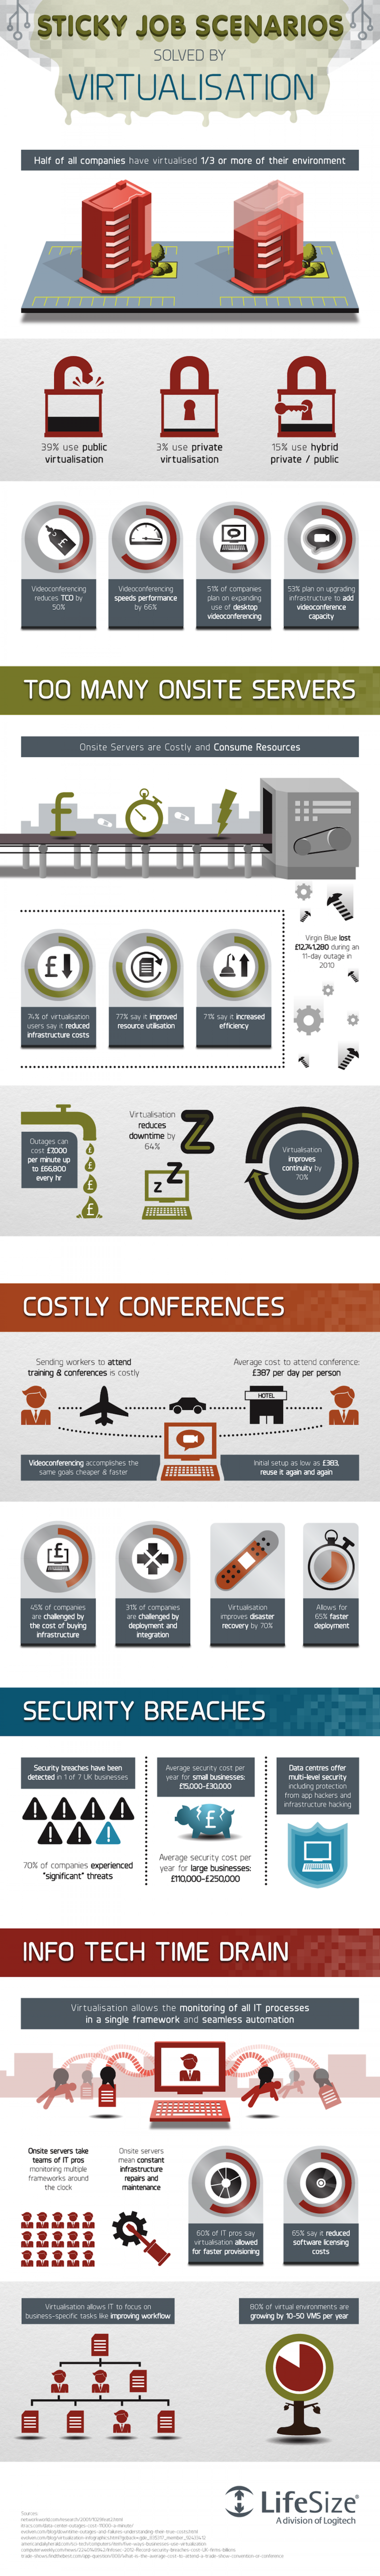 LifeSize Virtualisation infographic Infographic